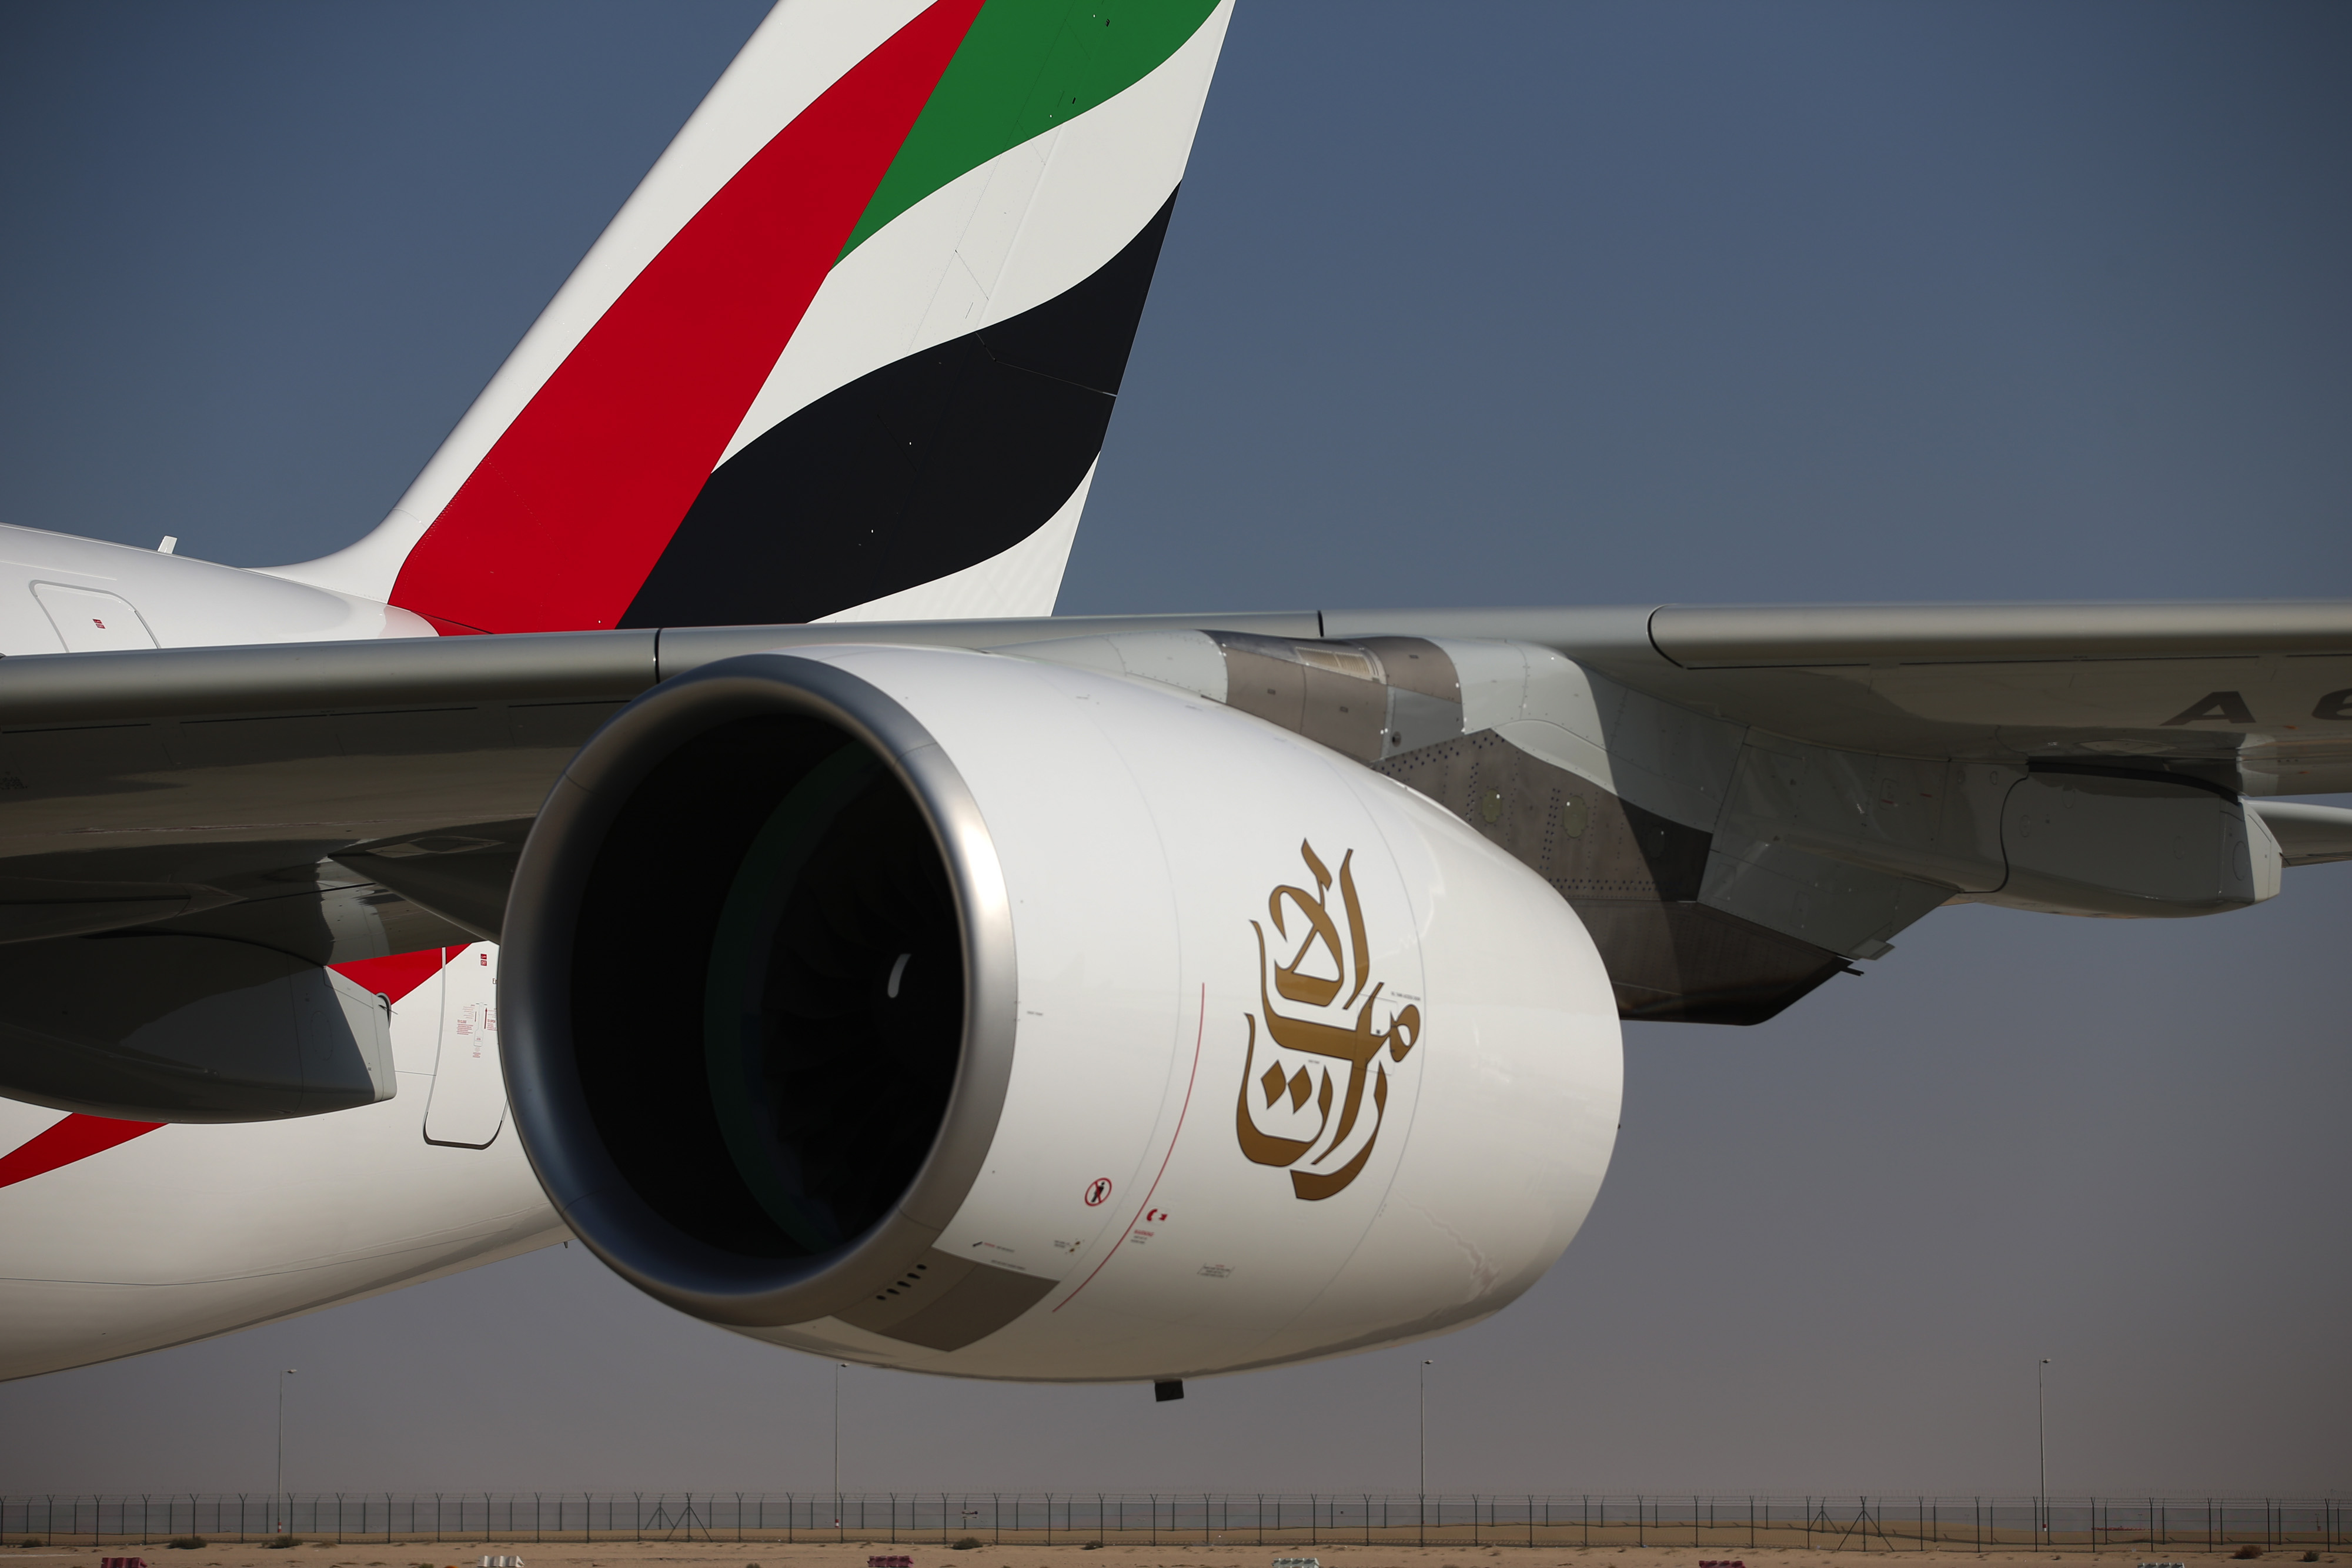 The engine of an Airbus SAS A380-800 aircraft hangs from the wing of an Emirates Airline aircraft on the opening day of the 14th Dubai Air Show in Dubai on Nov. 8, 2015